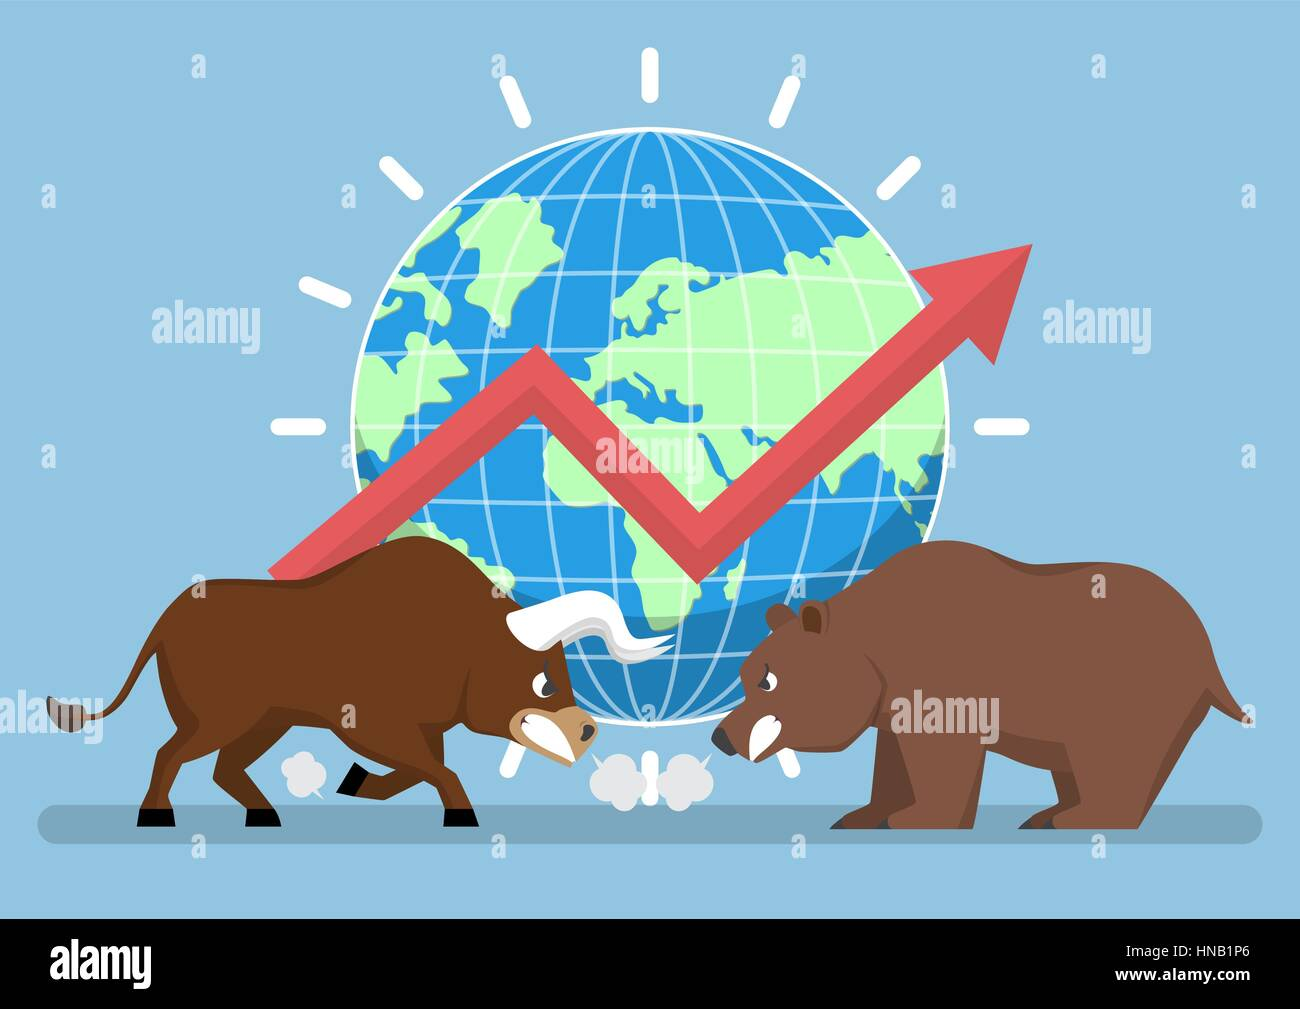 Bull and bear with world and graph in background, stock market trend concept - Stock Image